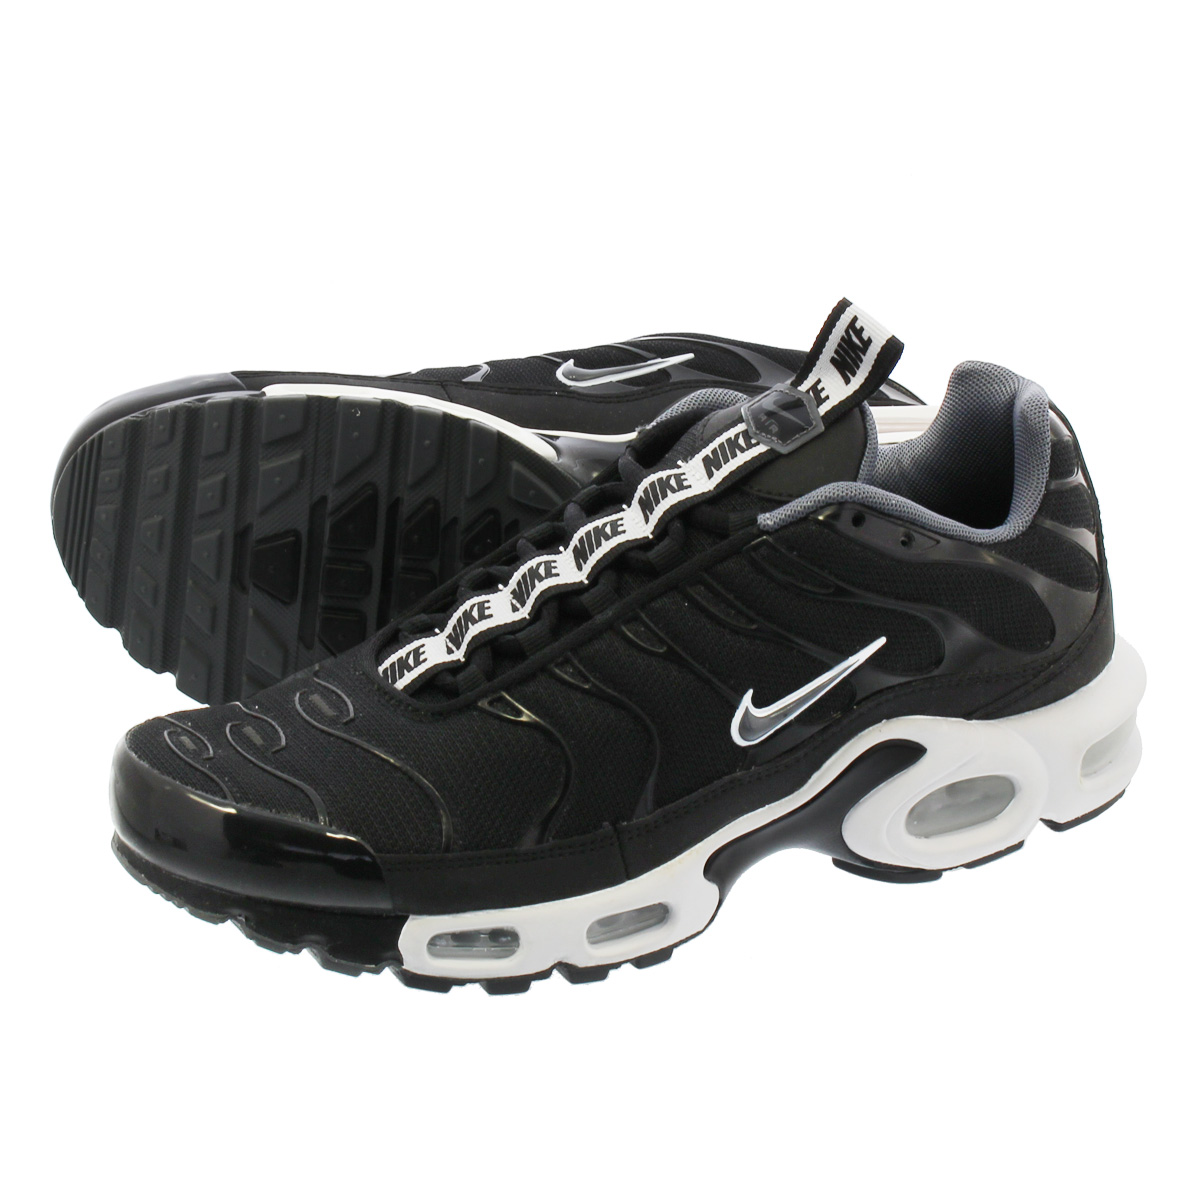 9bf4819167 NIKE AIR MAX PLUS TN SE Kie Ney AMAX plus TN SE BLACK/WHITE aq4128 ...